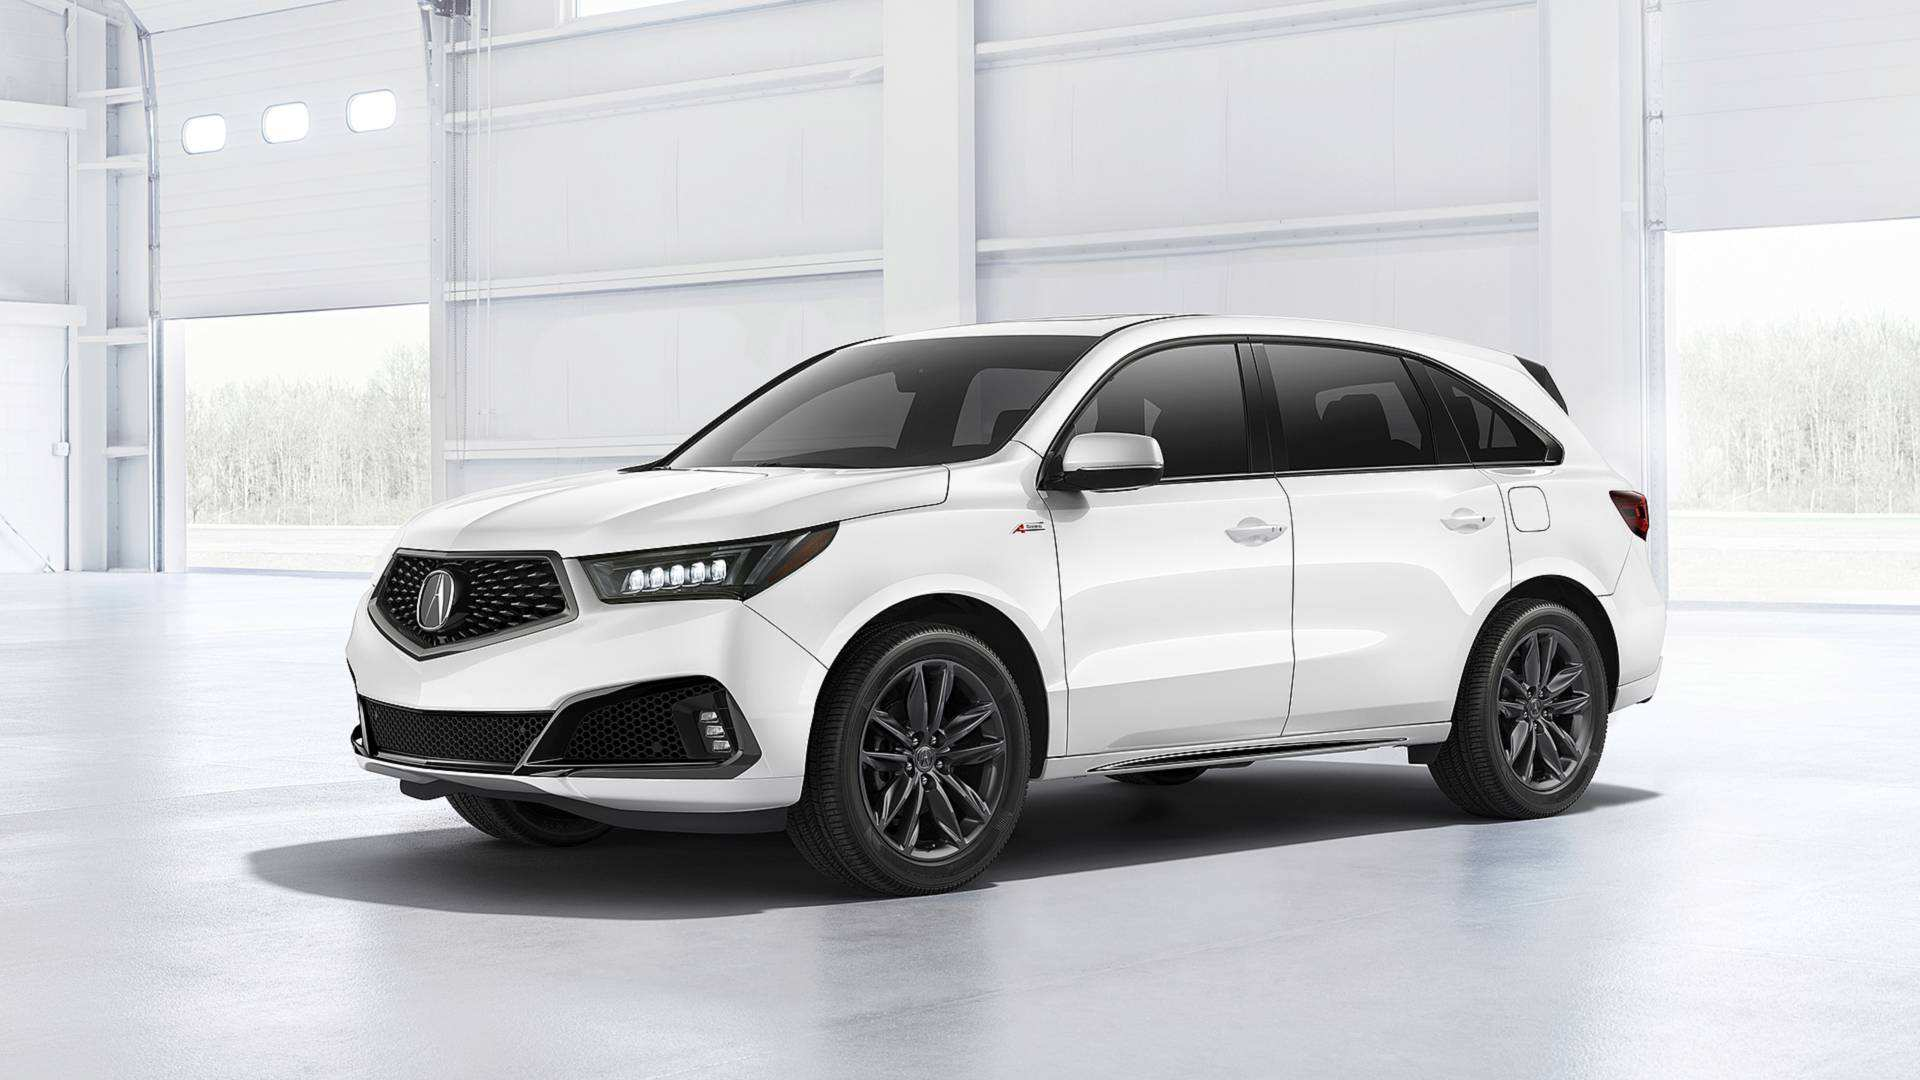 63 All New Images Of 2020 Acura Mdx Interior by Images Of 2020 Acura Mdx